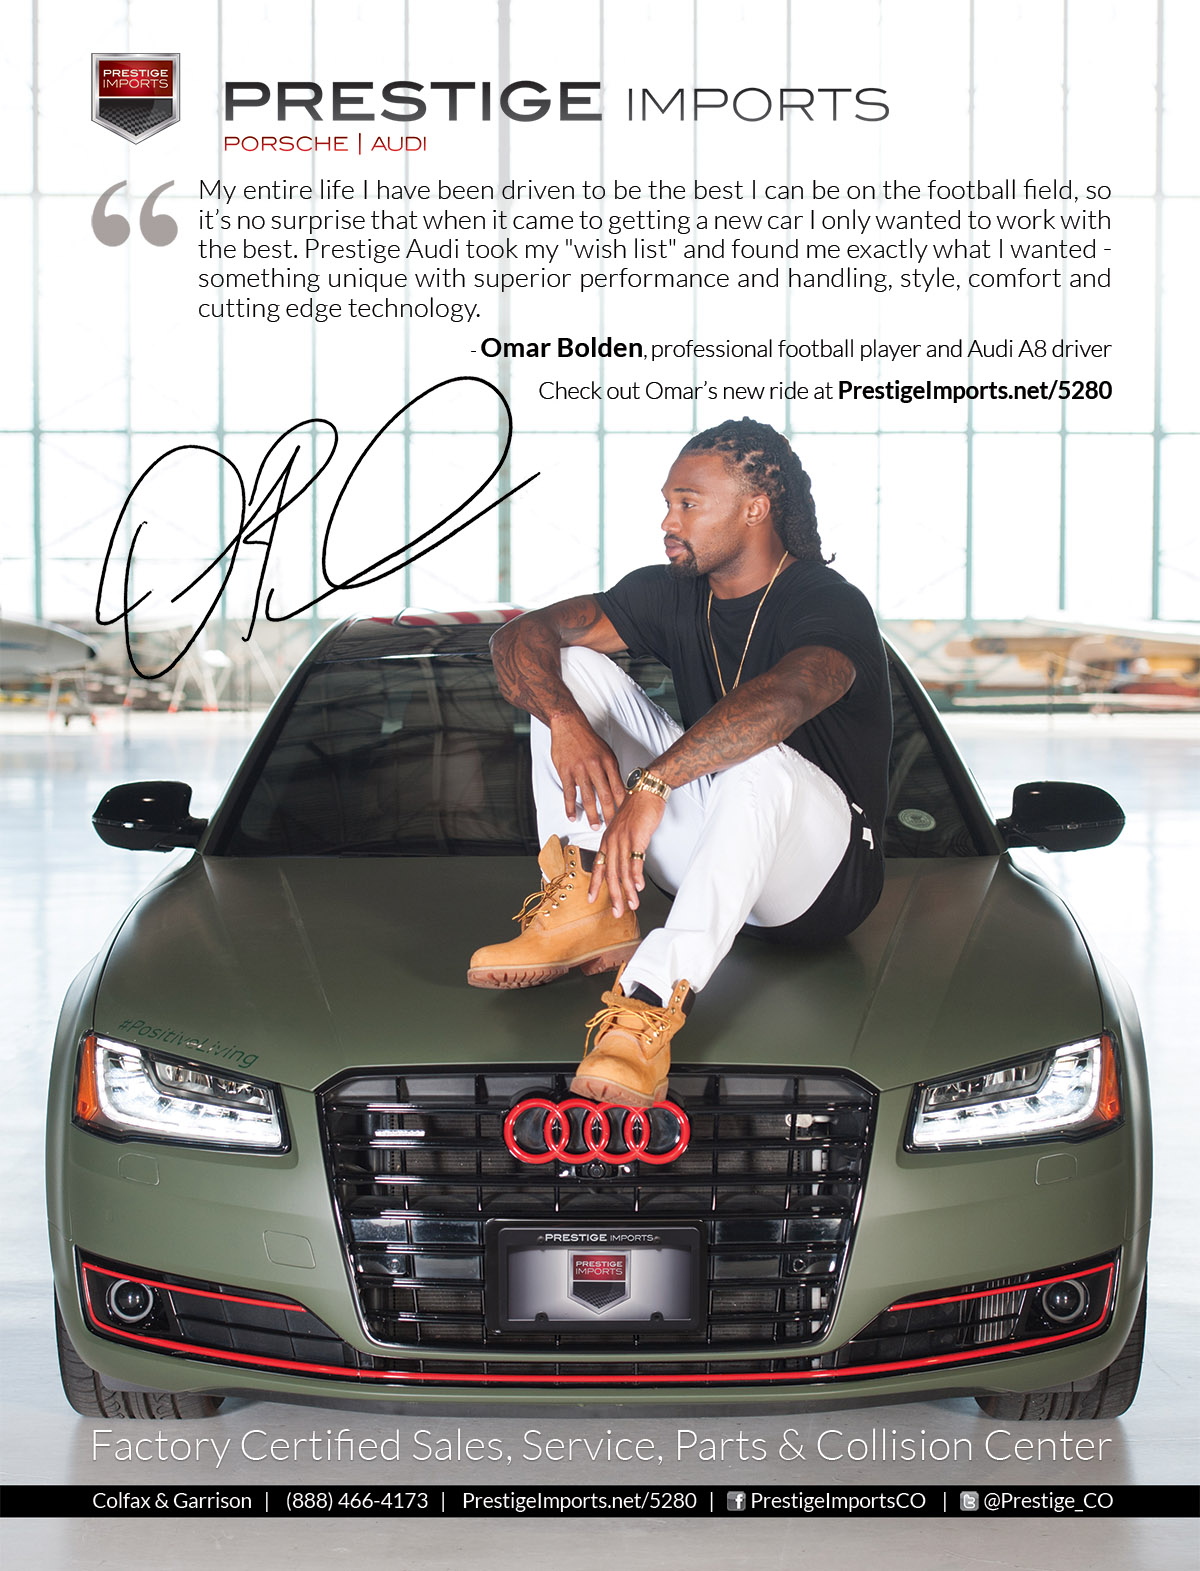 Print Ad featuring Omar Bolden's Audi A8L - Omar Bolden, professional football player and Aud A8 driver sits on the hood of his car.